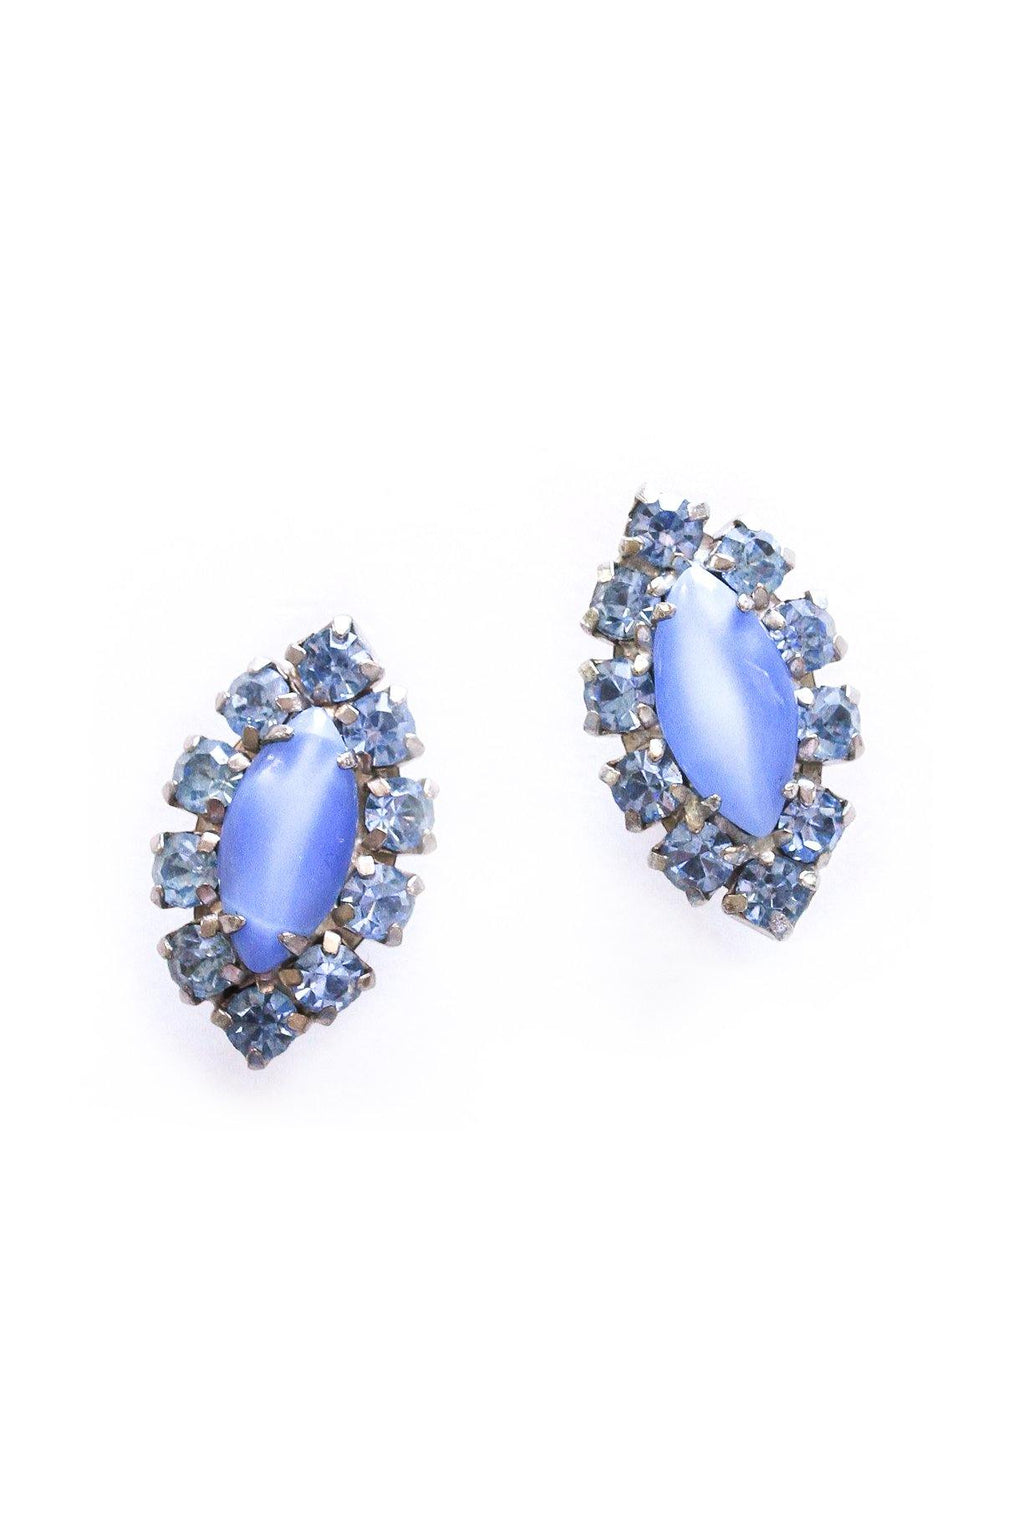 Blue Rhinestone Oval Clip-on Earrings